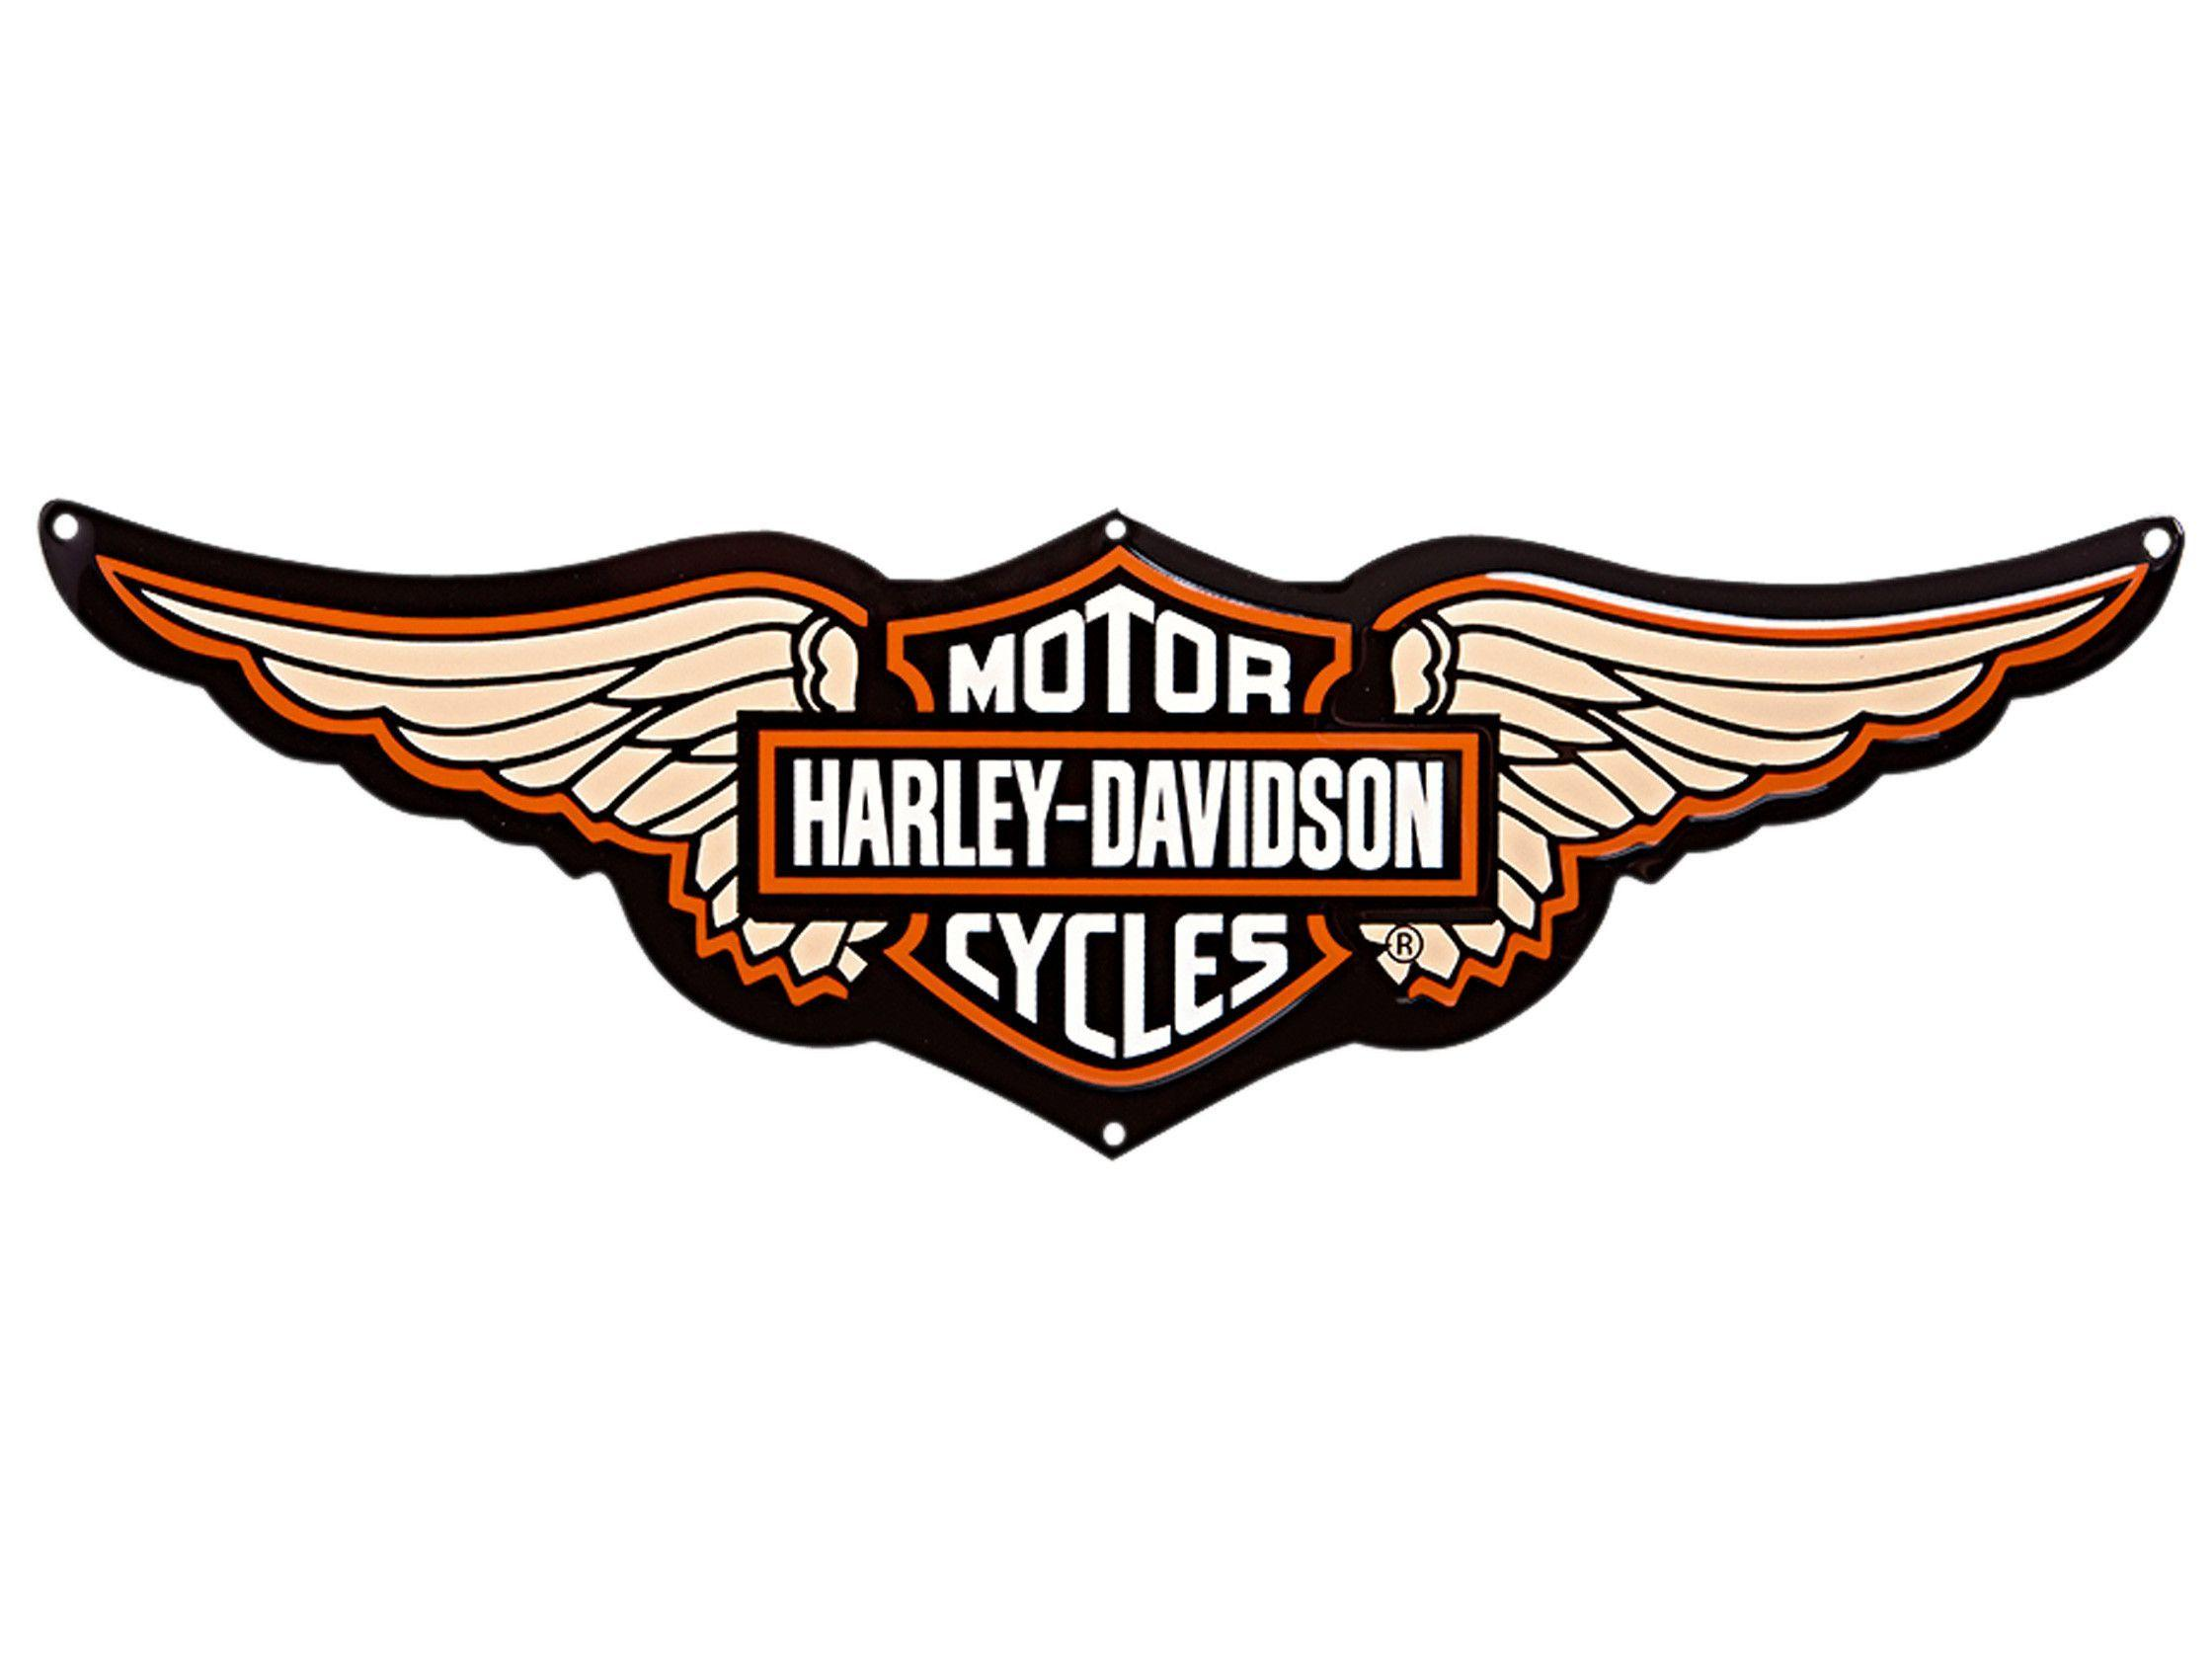 newest harley davidson logo wallpapers - photo #15